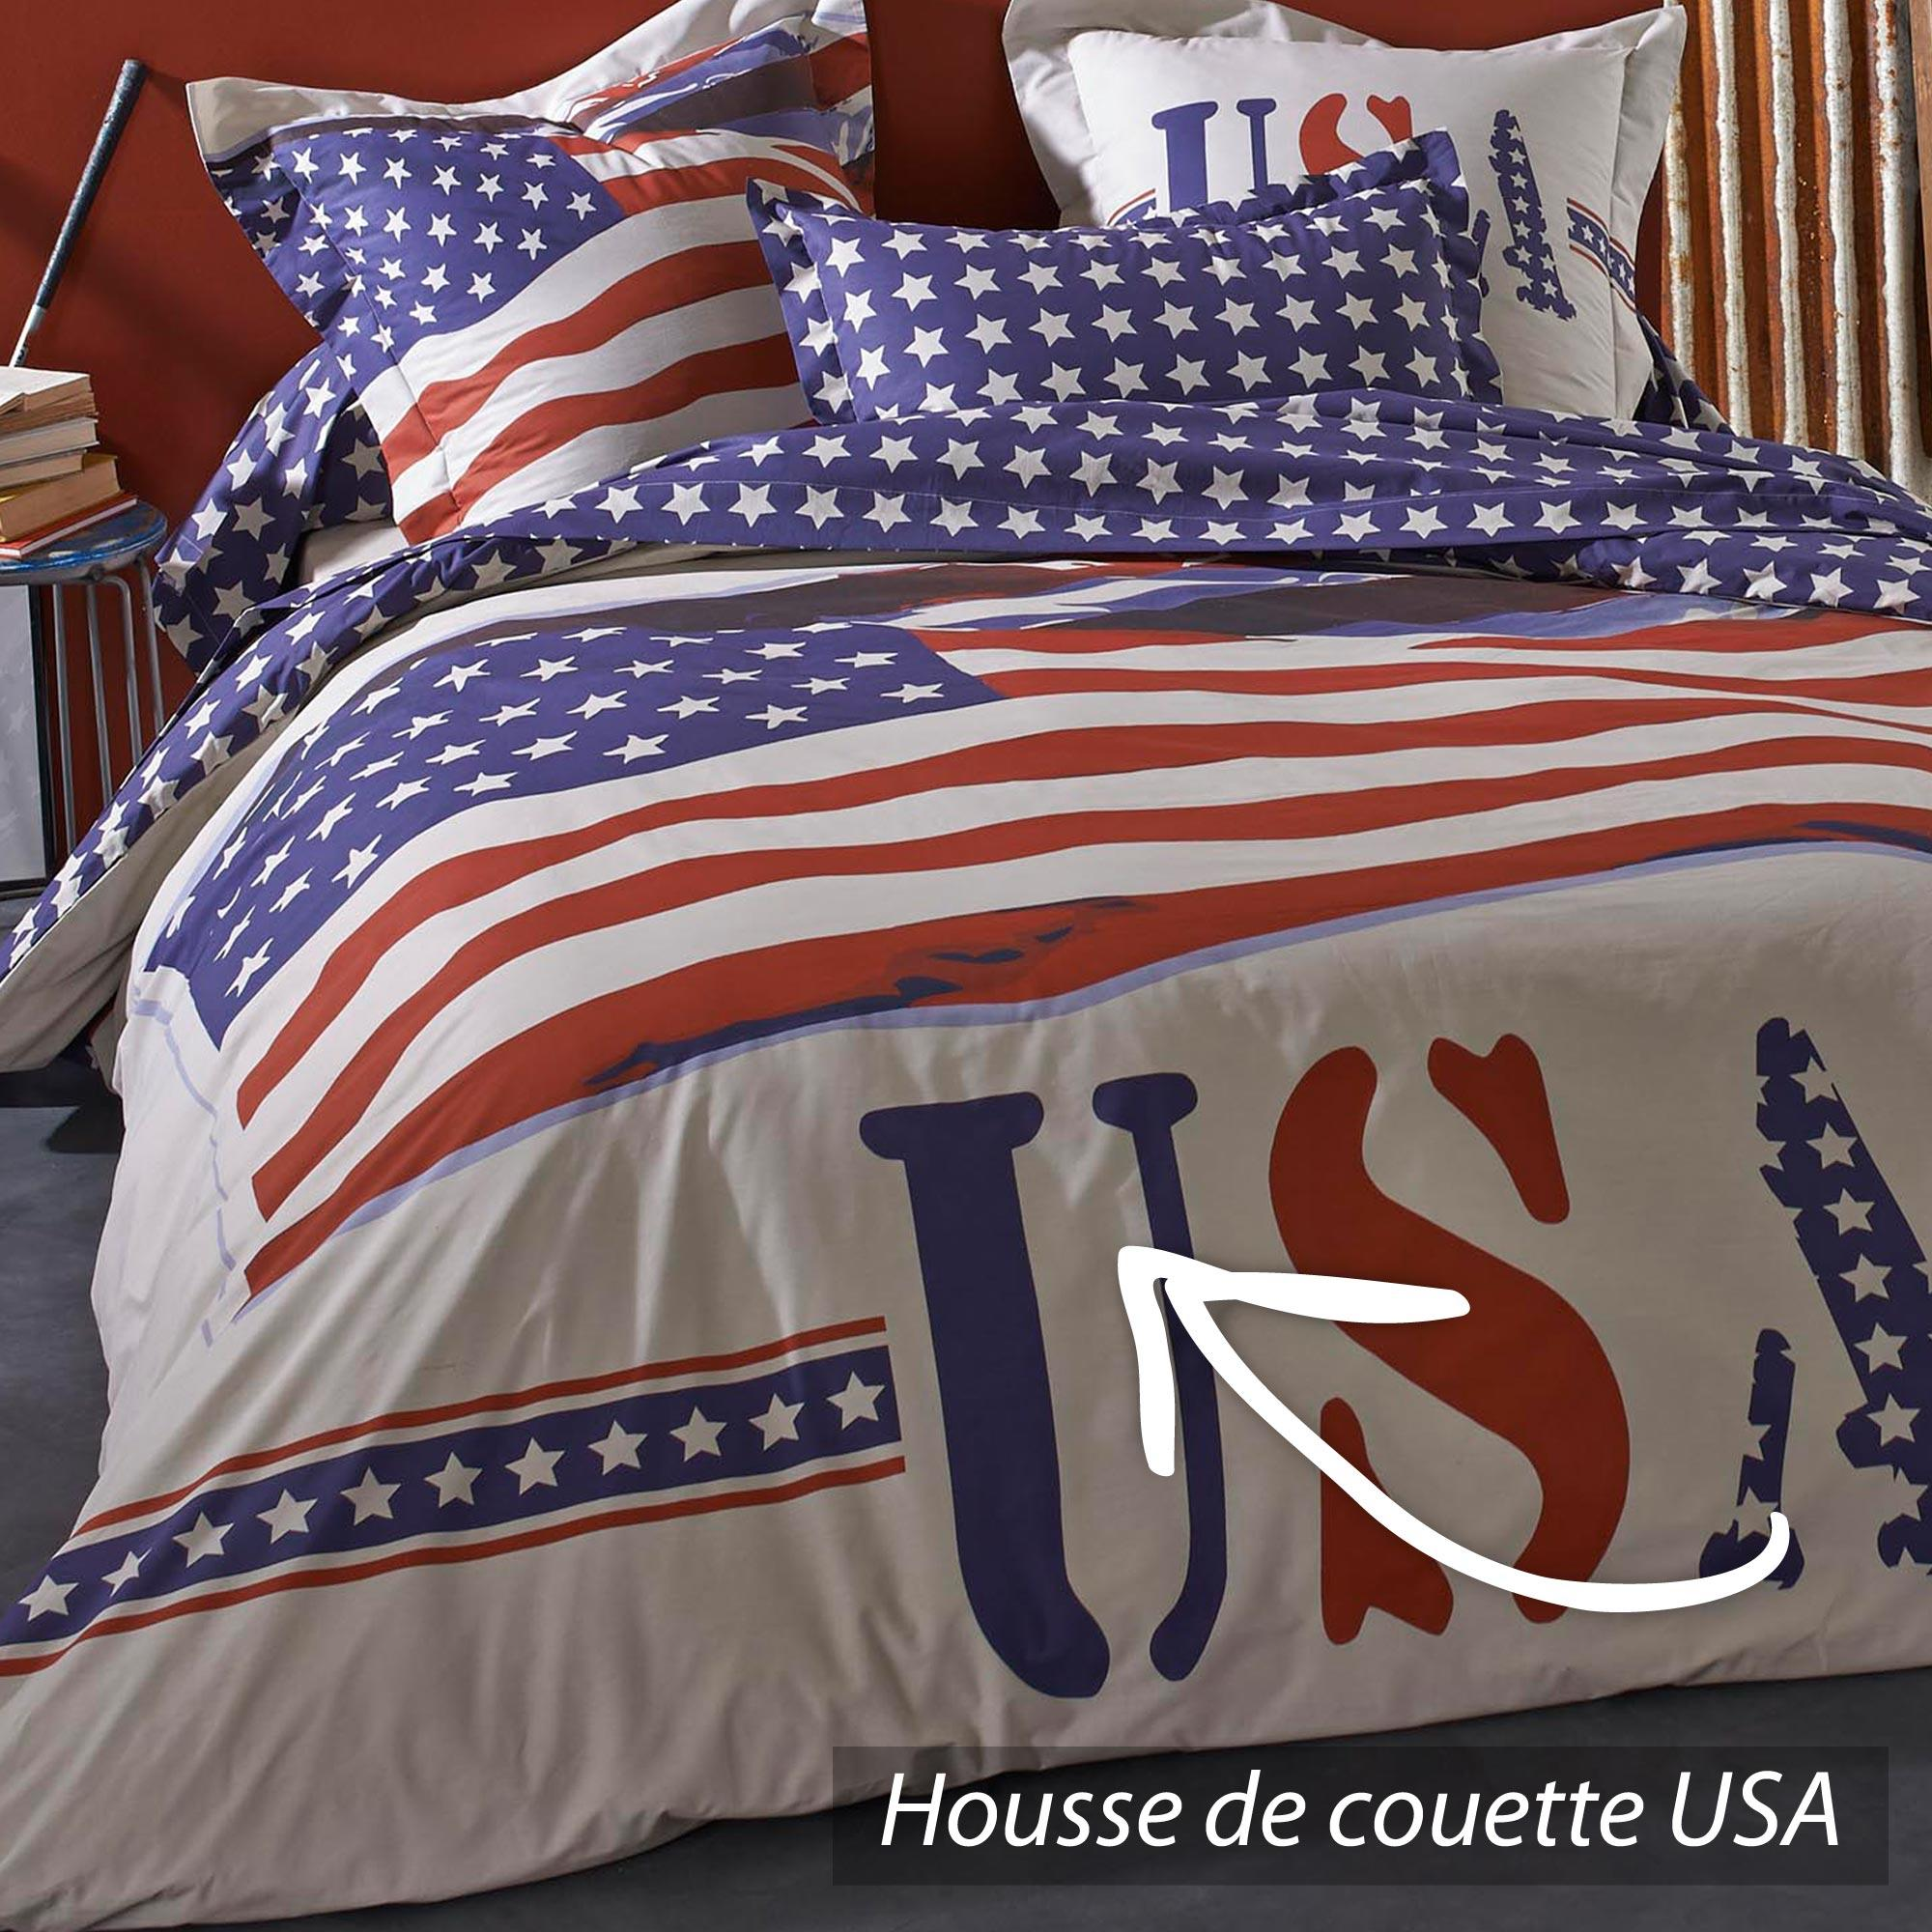 housse de couette usa housse de couette usa 220x240 2 taies 65x65 la compagnie du blanc housse. Black Bedroom Furniture Sets. Home Design Ideas